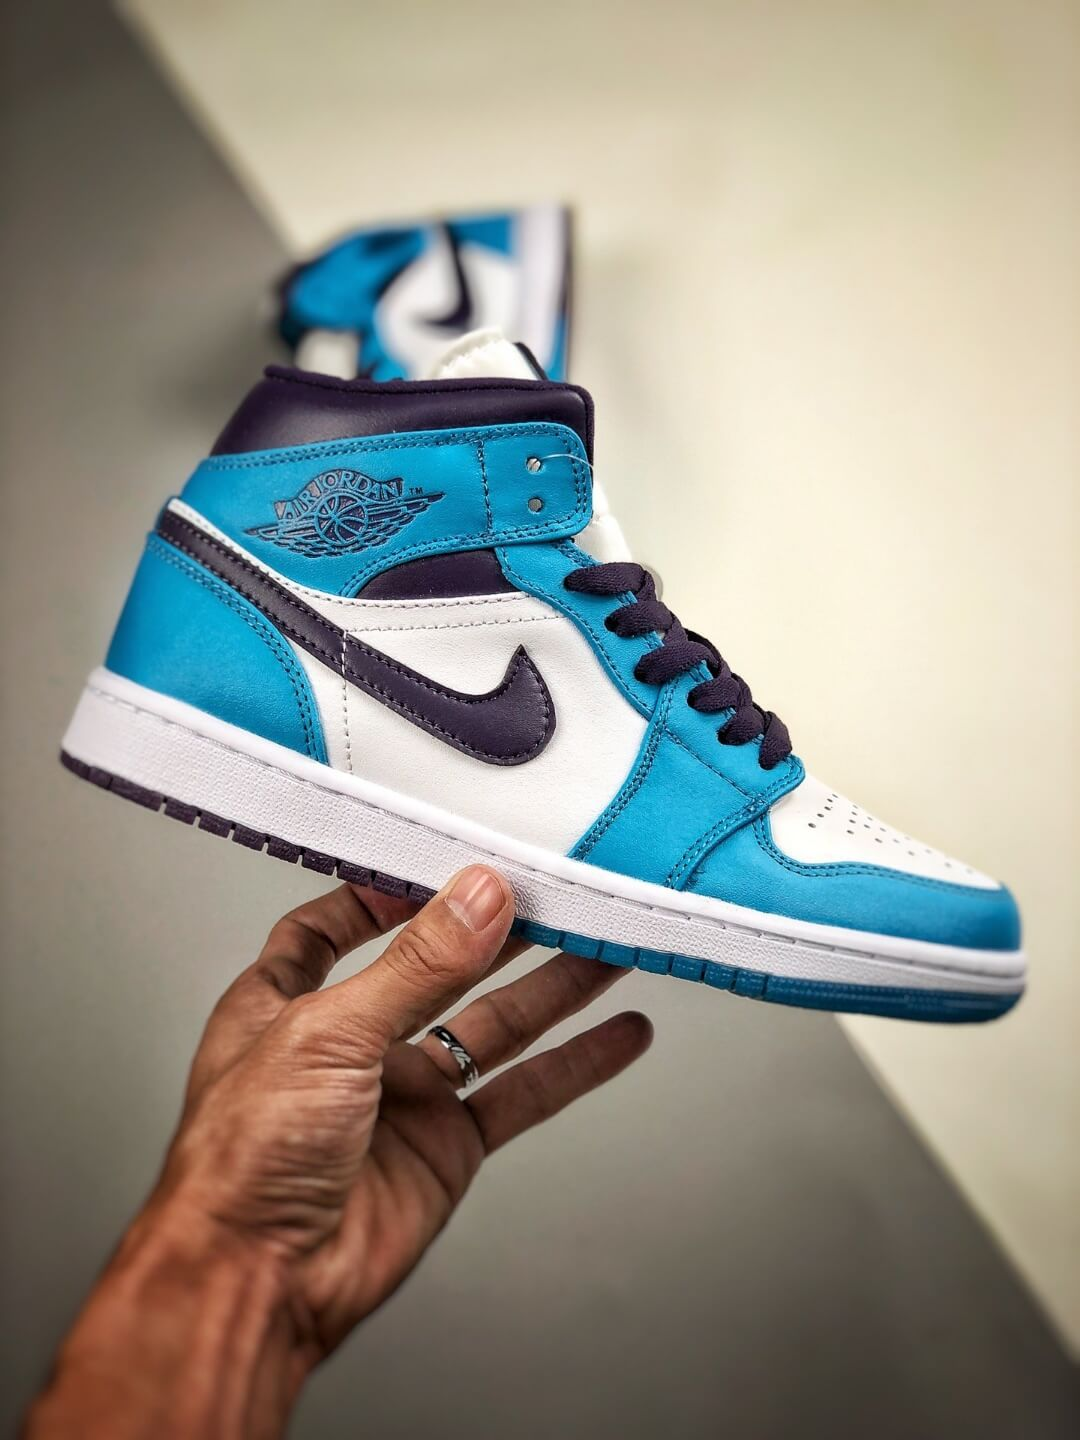 The Air Jordan 1 Mid Hornets Blue Lagoon and Grand Purple Leather Upper Jordan Wings Logo Repsneakers 02